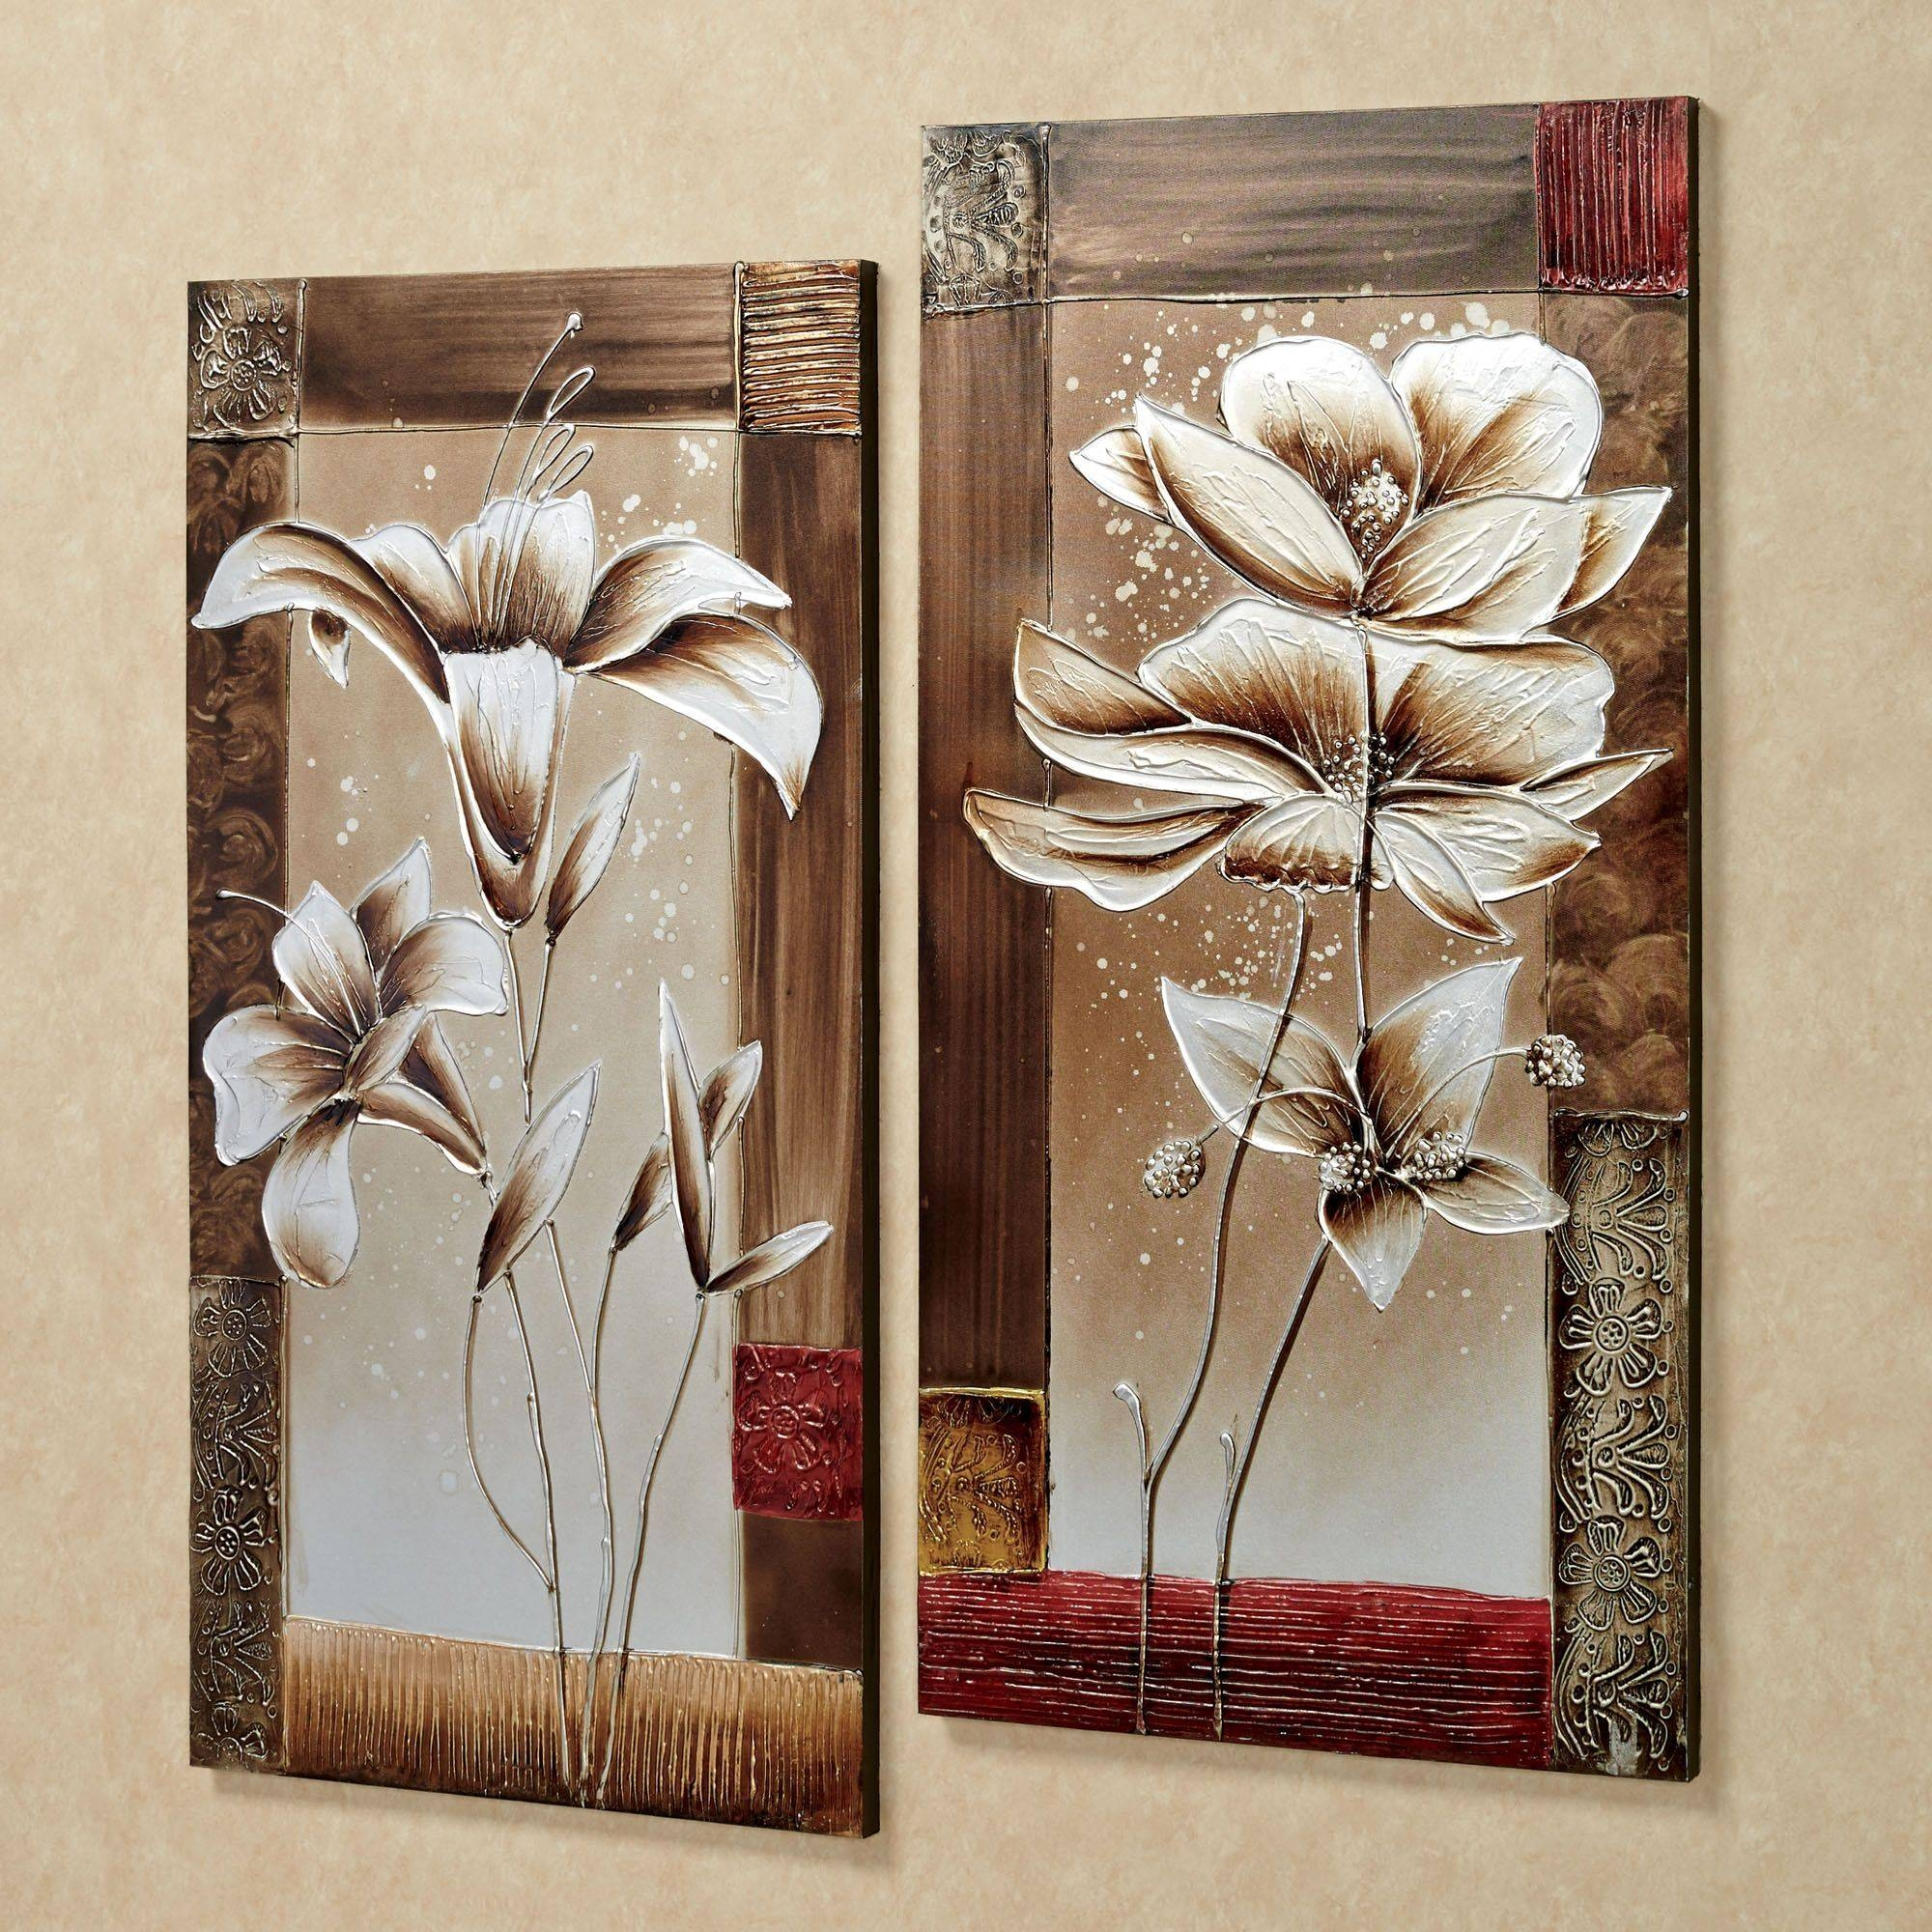 Wall Art Designs: Wall Art Sets Petals Of Spring Canvas Wall Art With Regard To Newest Matching Canvas Wall Art (View 19 of 20)